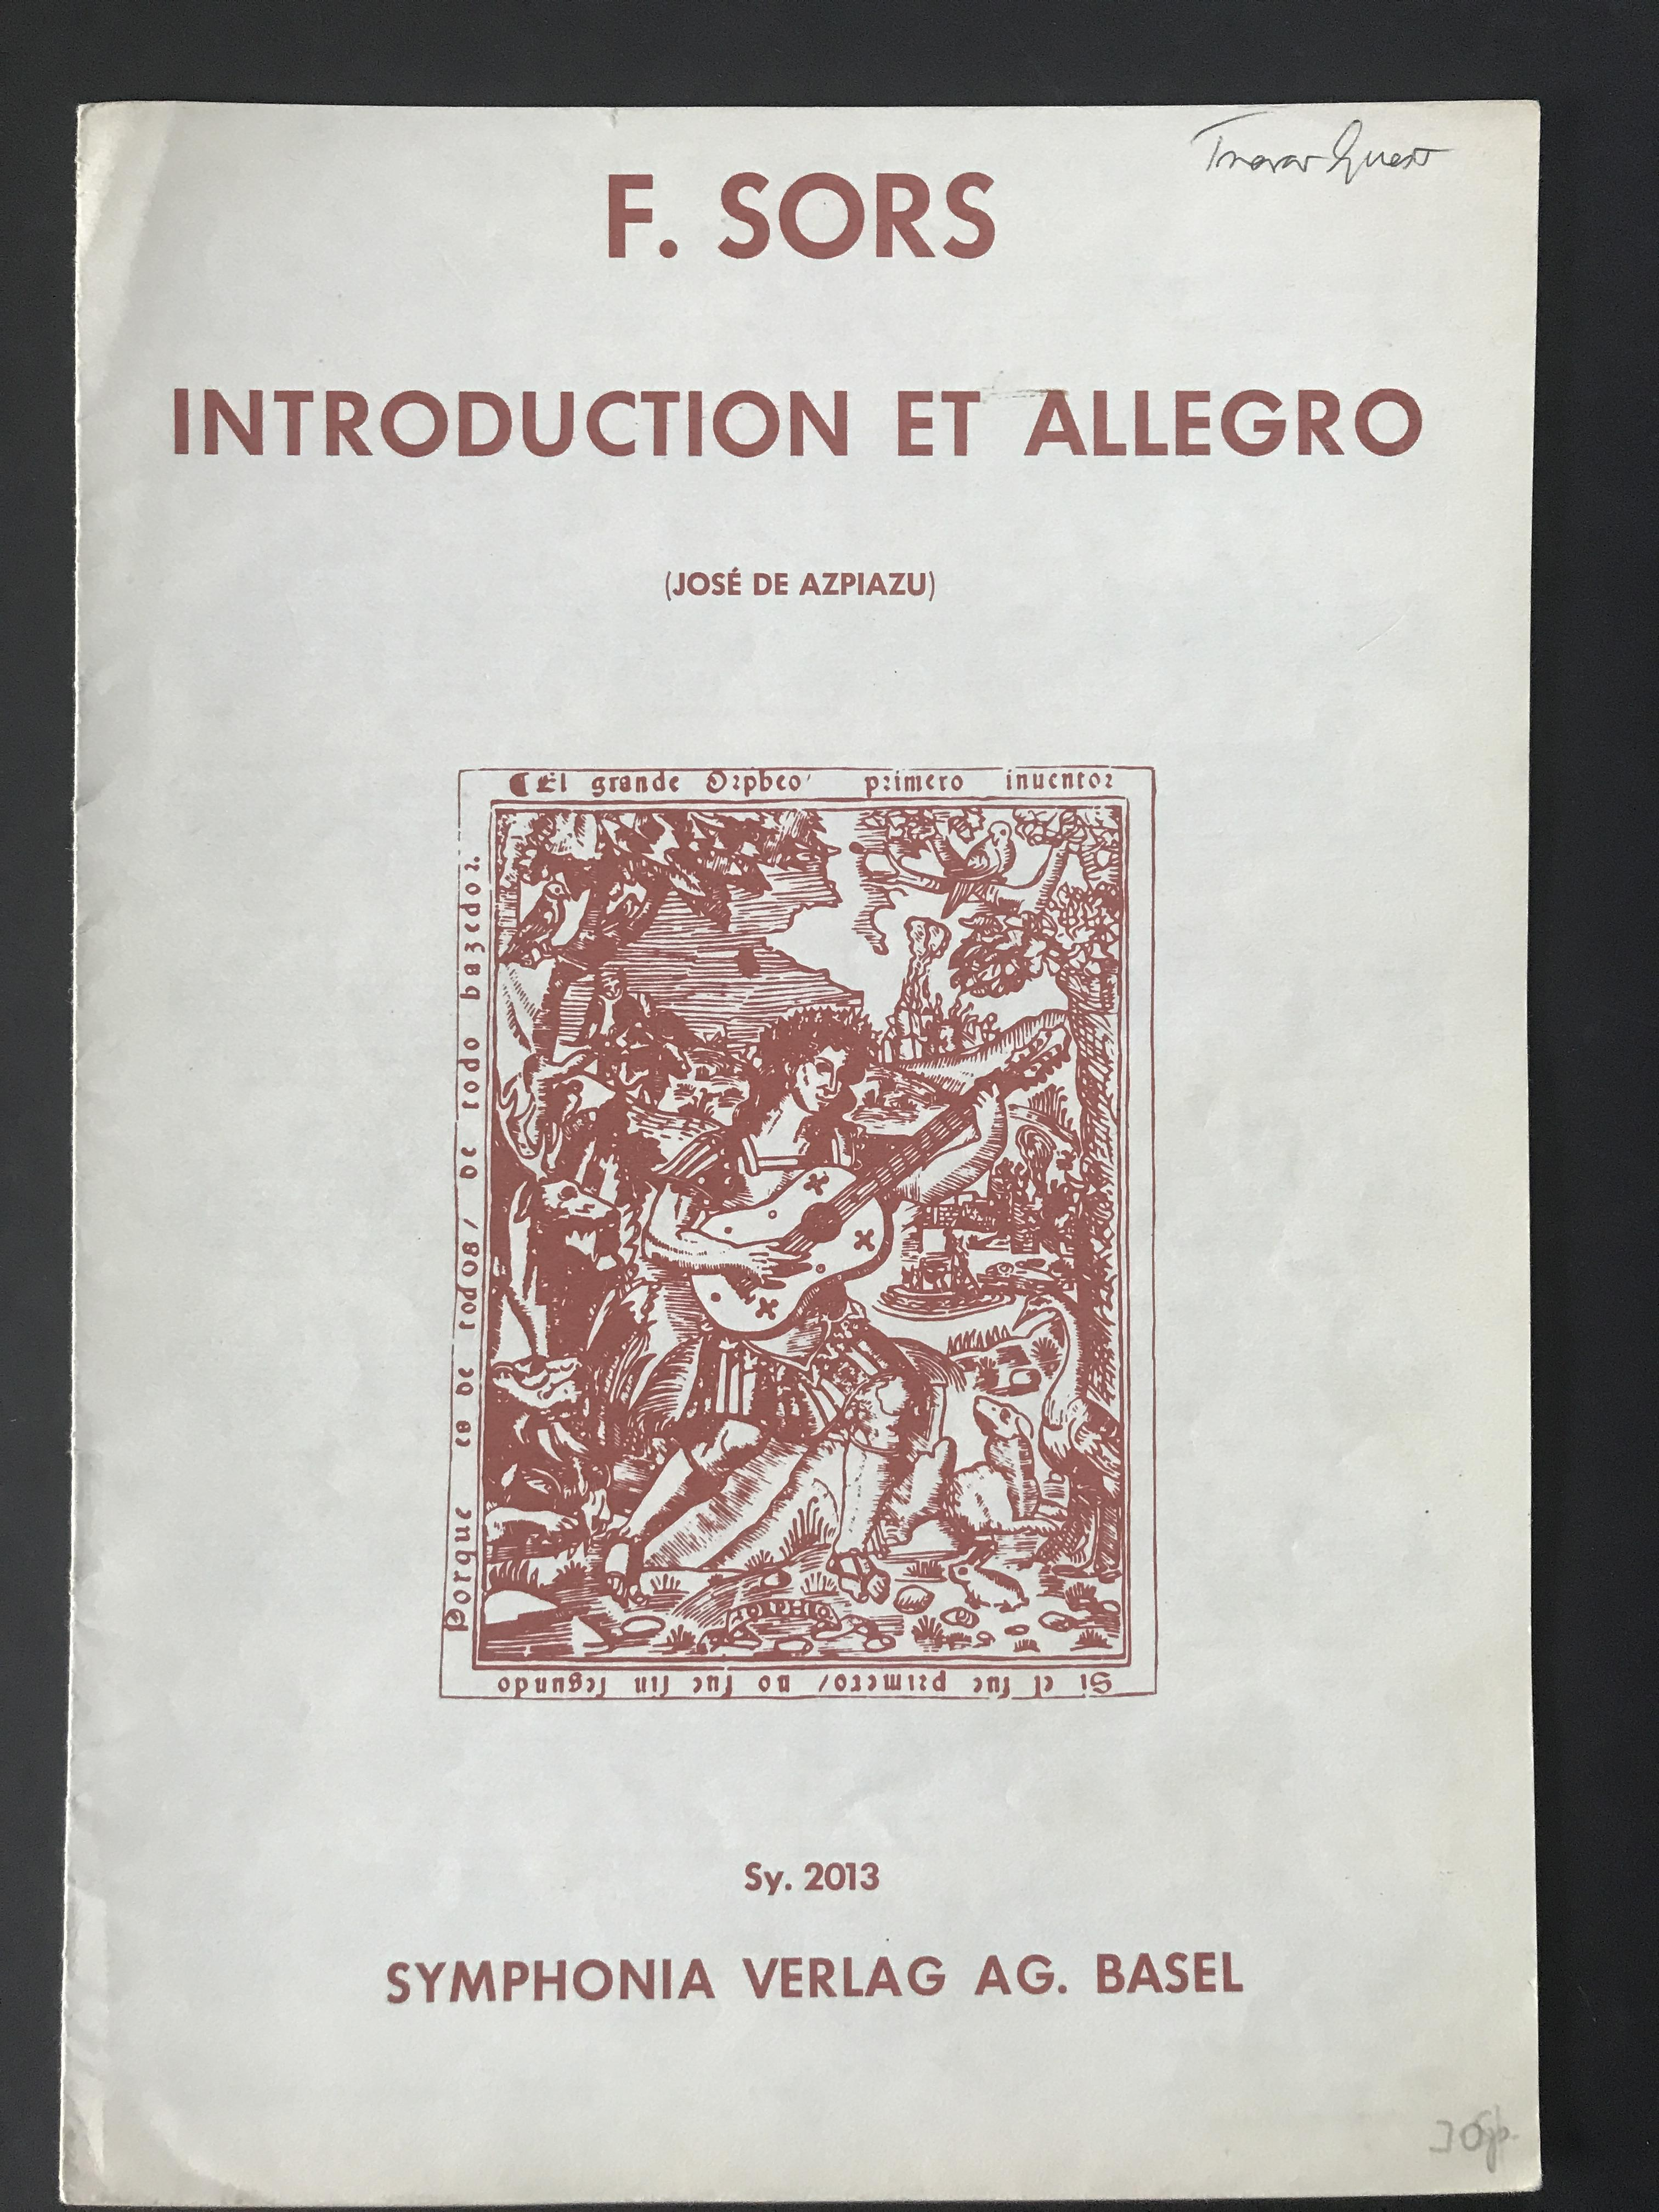 Introduction and Allegro by Fernando Sor